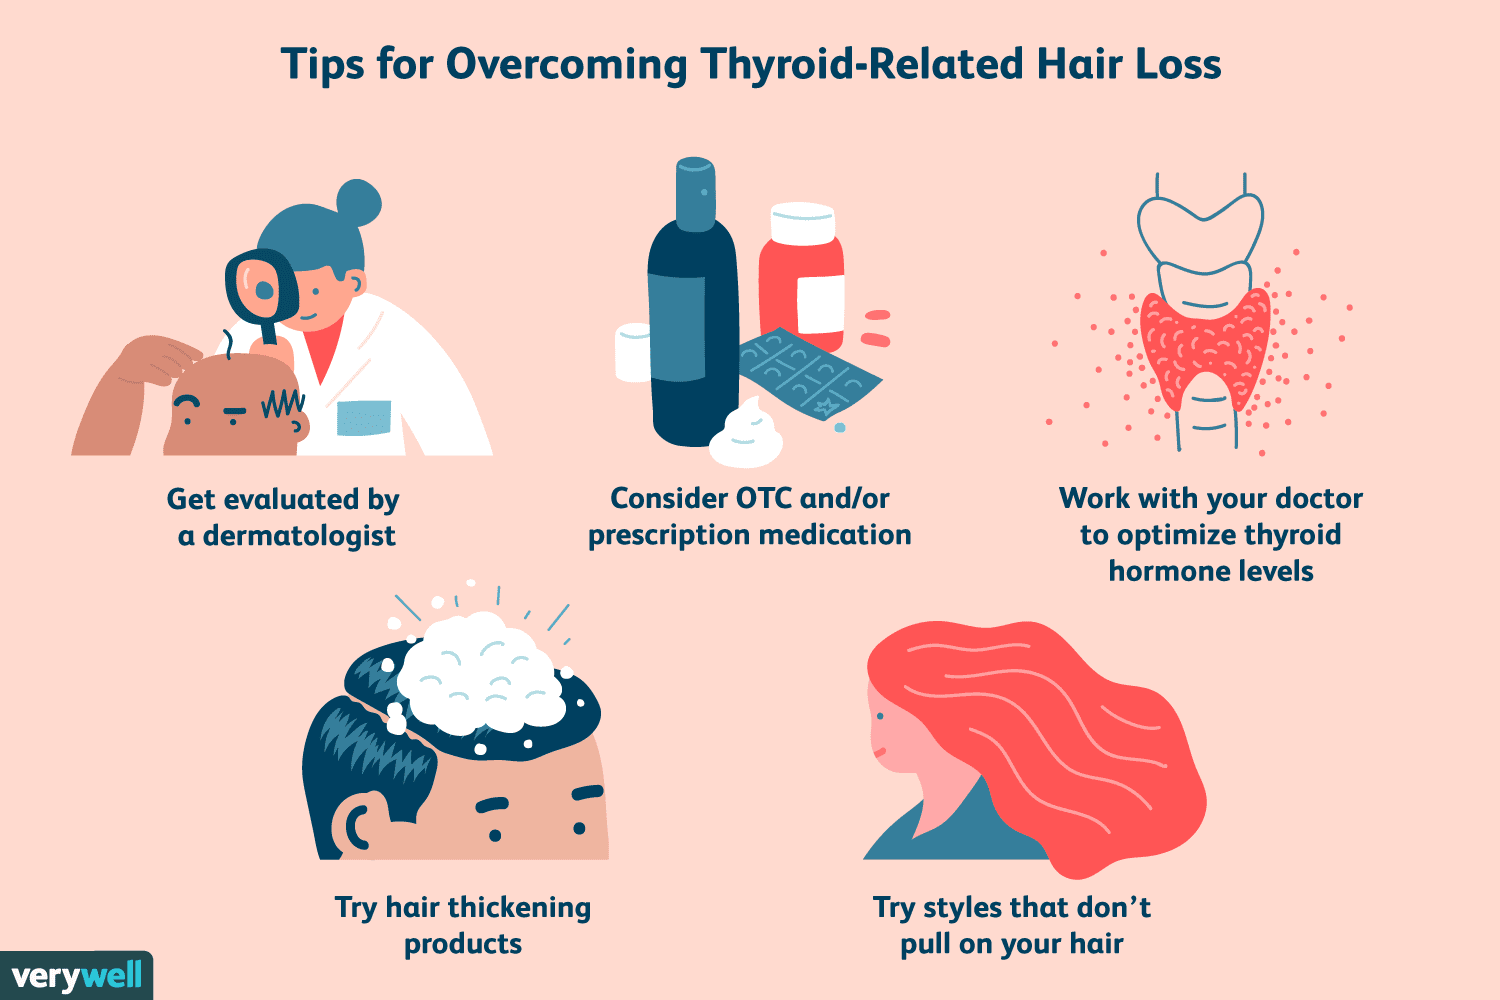 Tips for overcoming thyroid-related hair loss